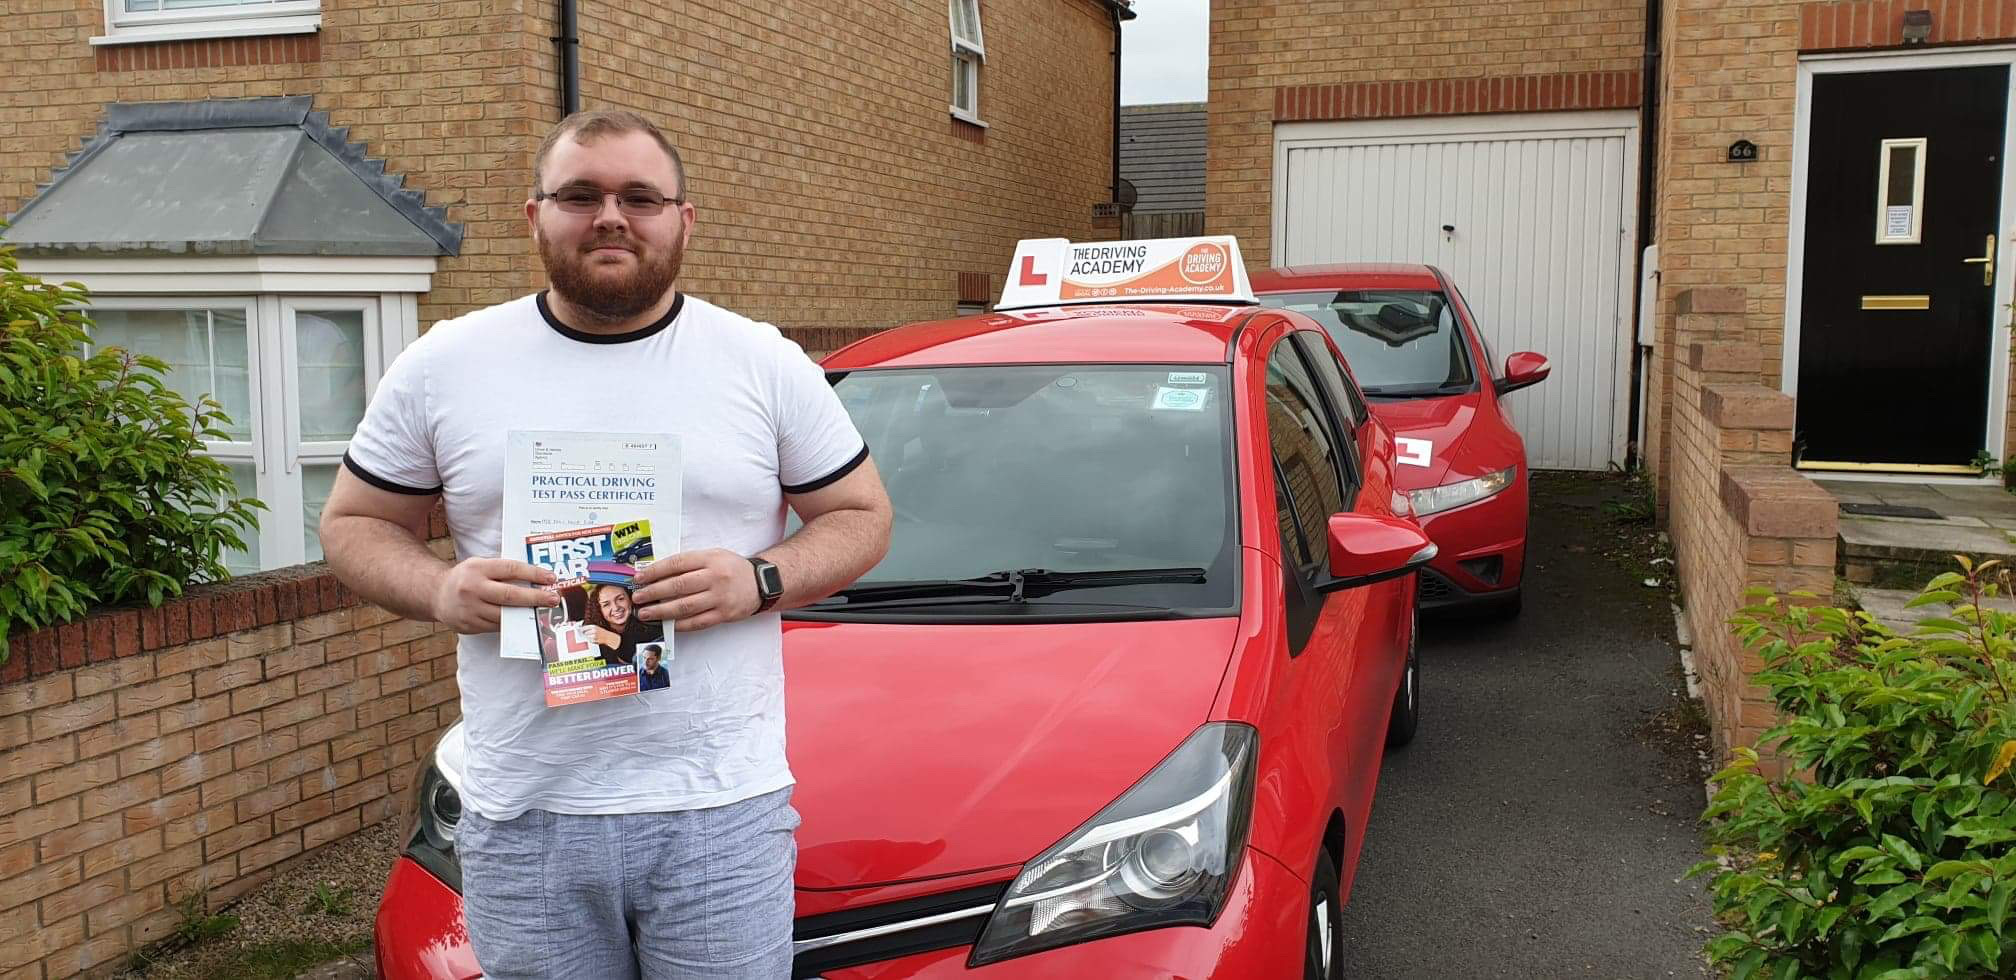 Sean Gibb from Bishop Auckland passed his driving test in Durham